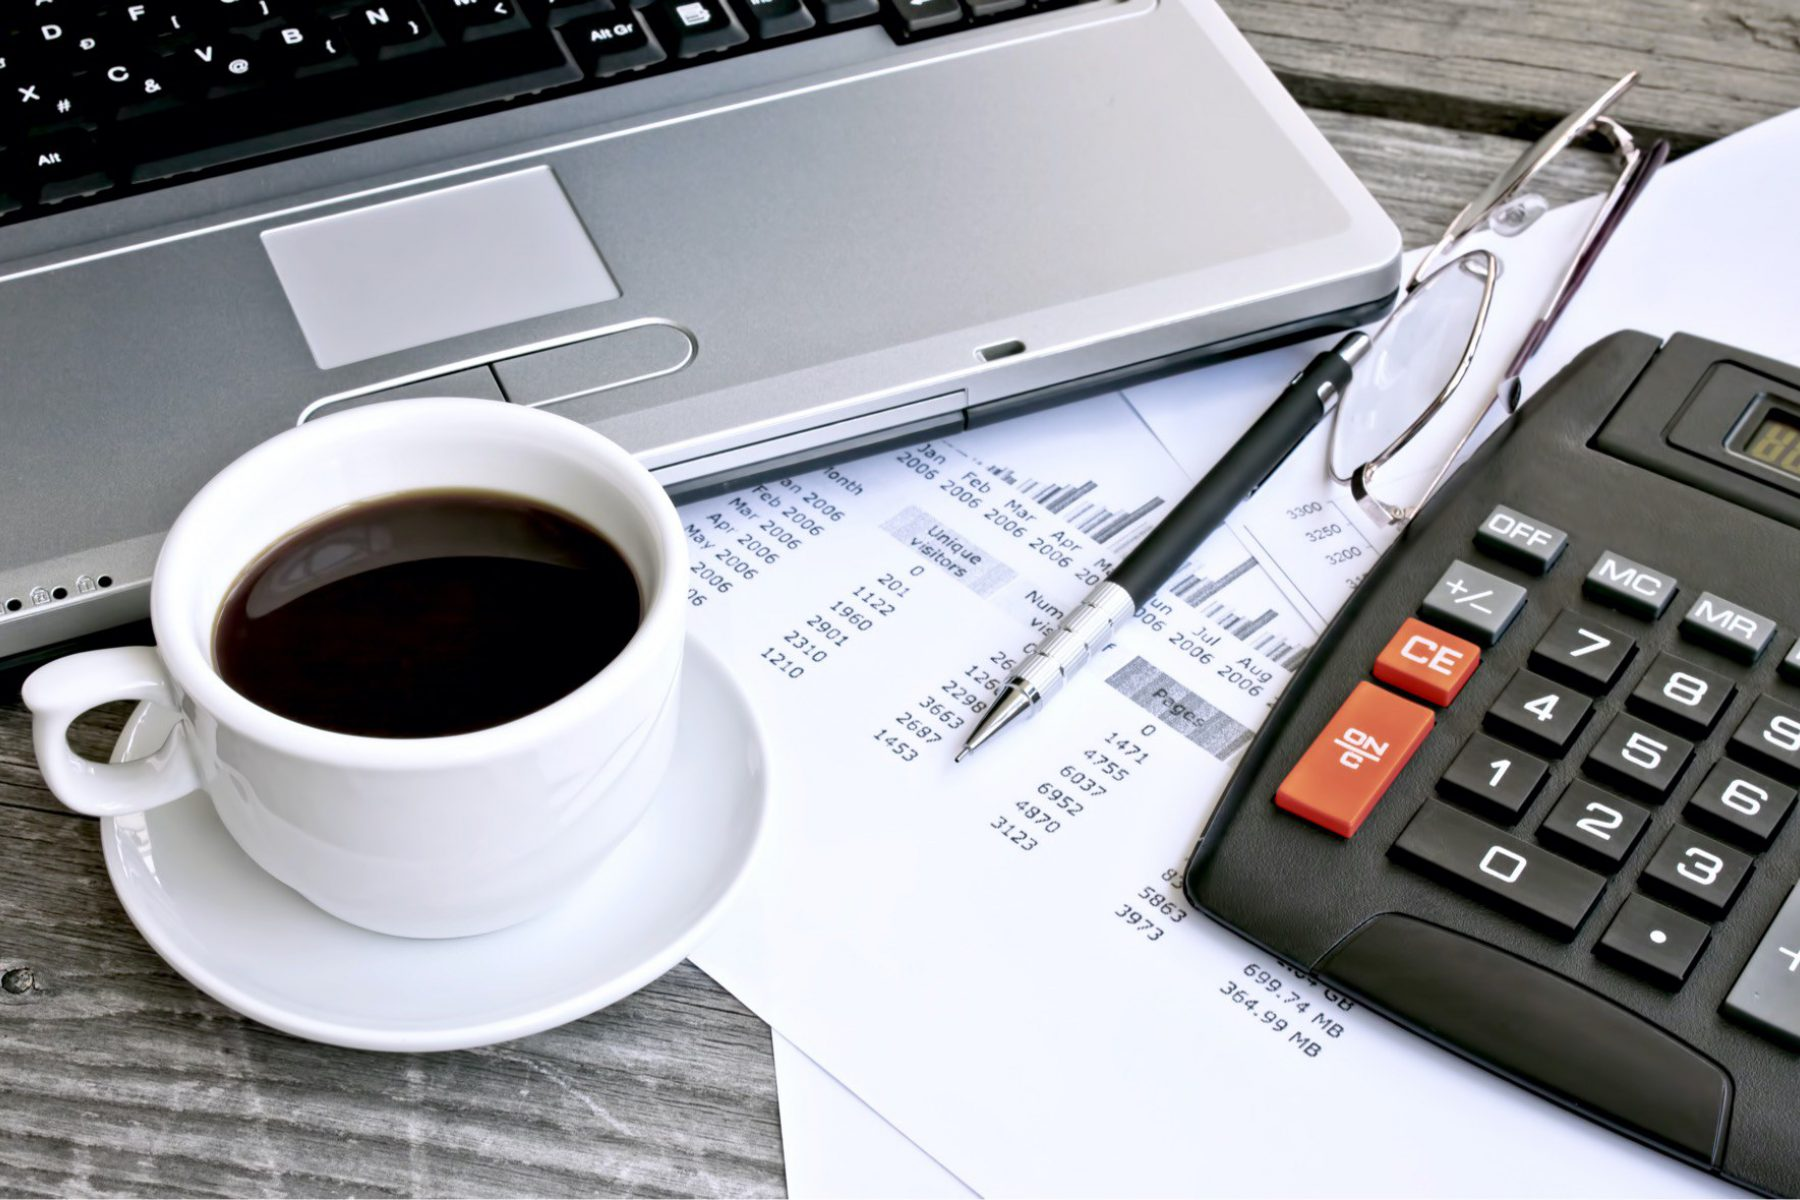 Self-Managed Super Funds (SMSF) administration and compliance services